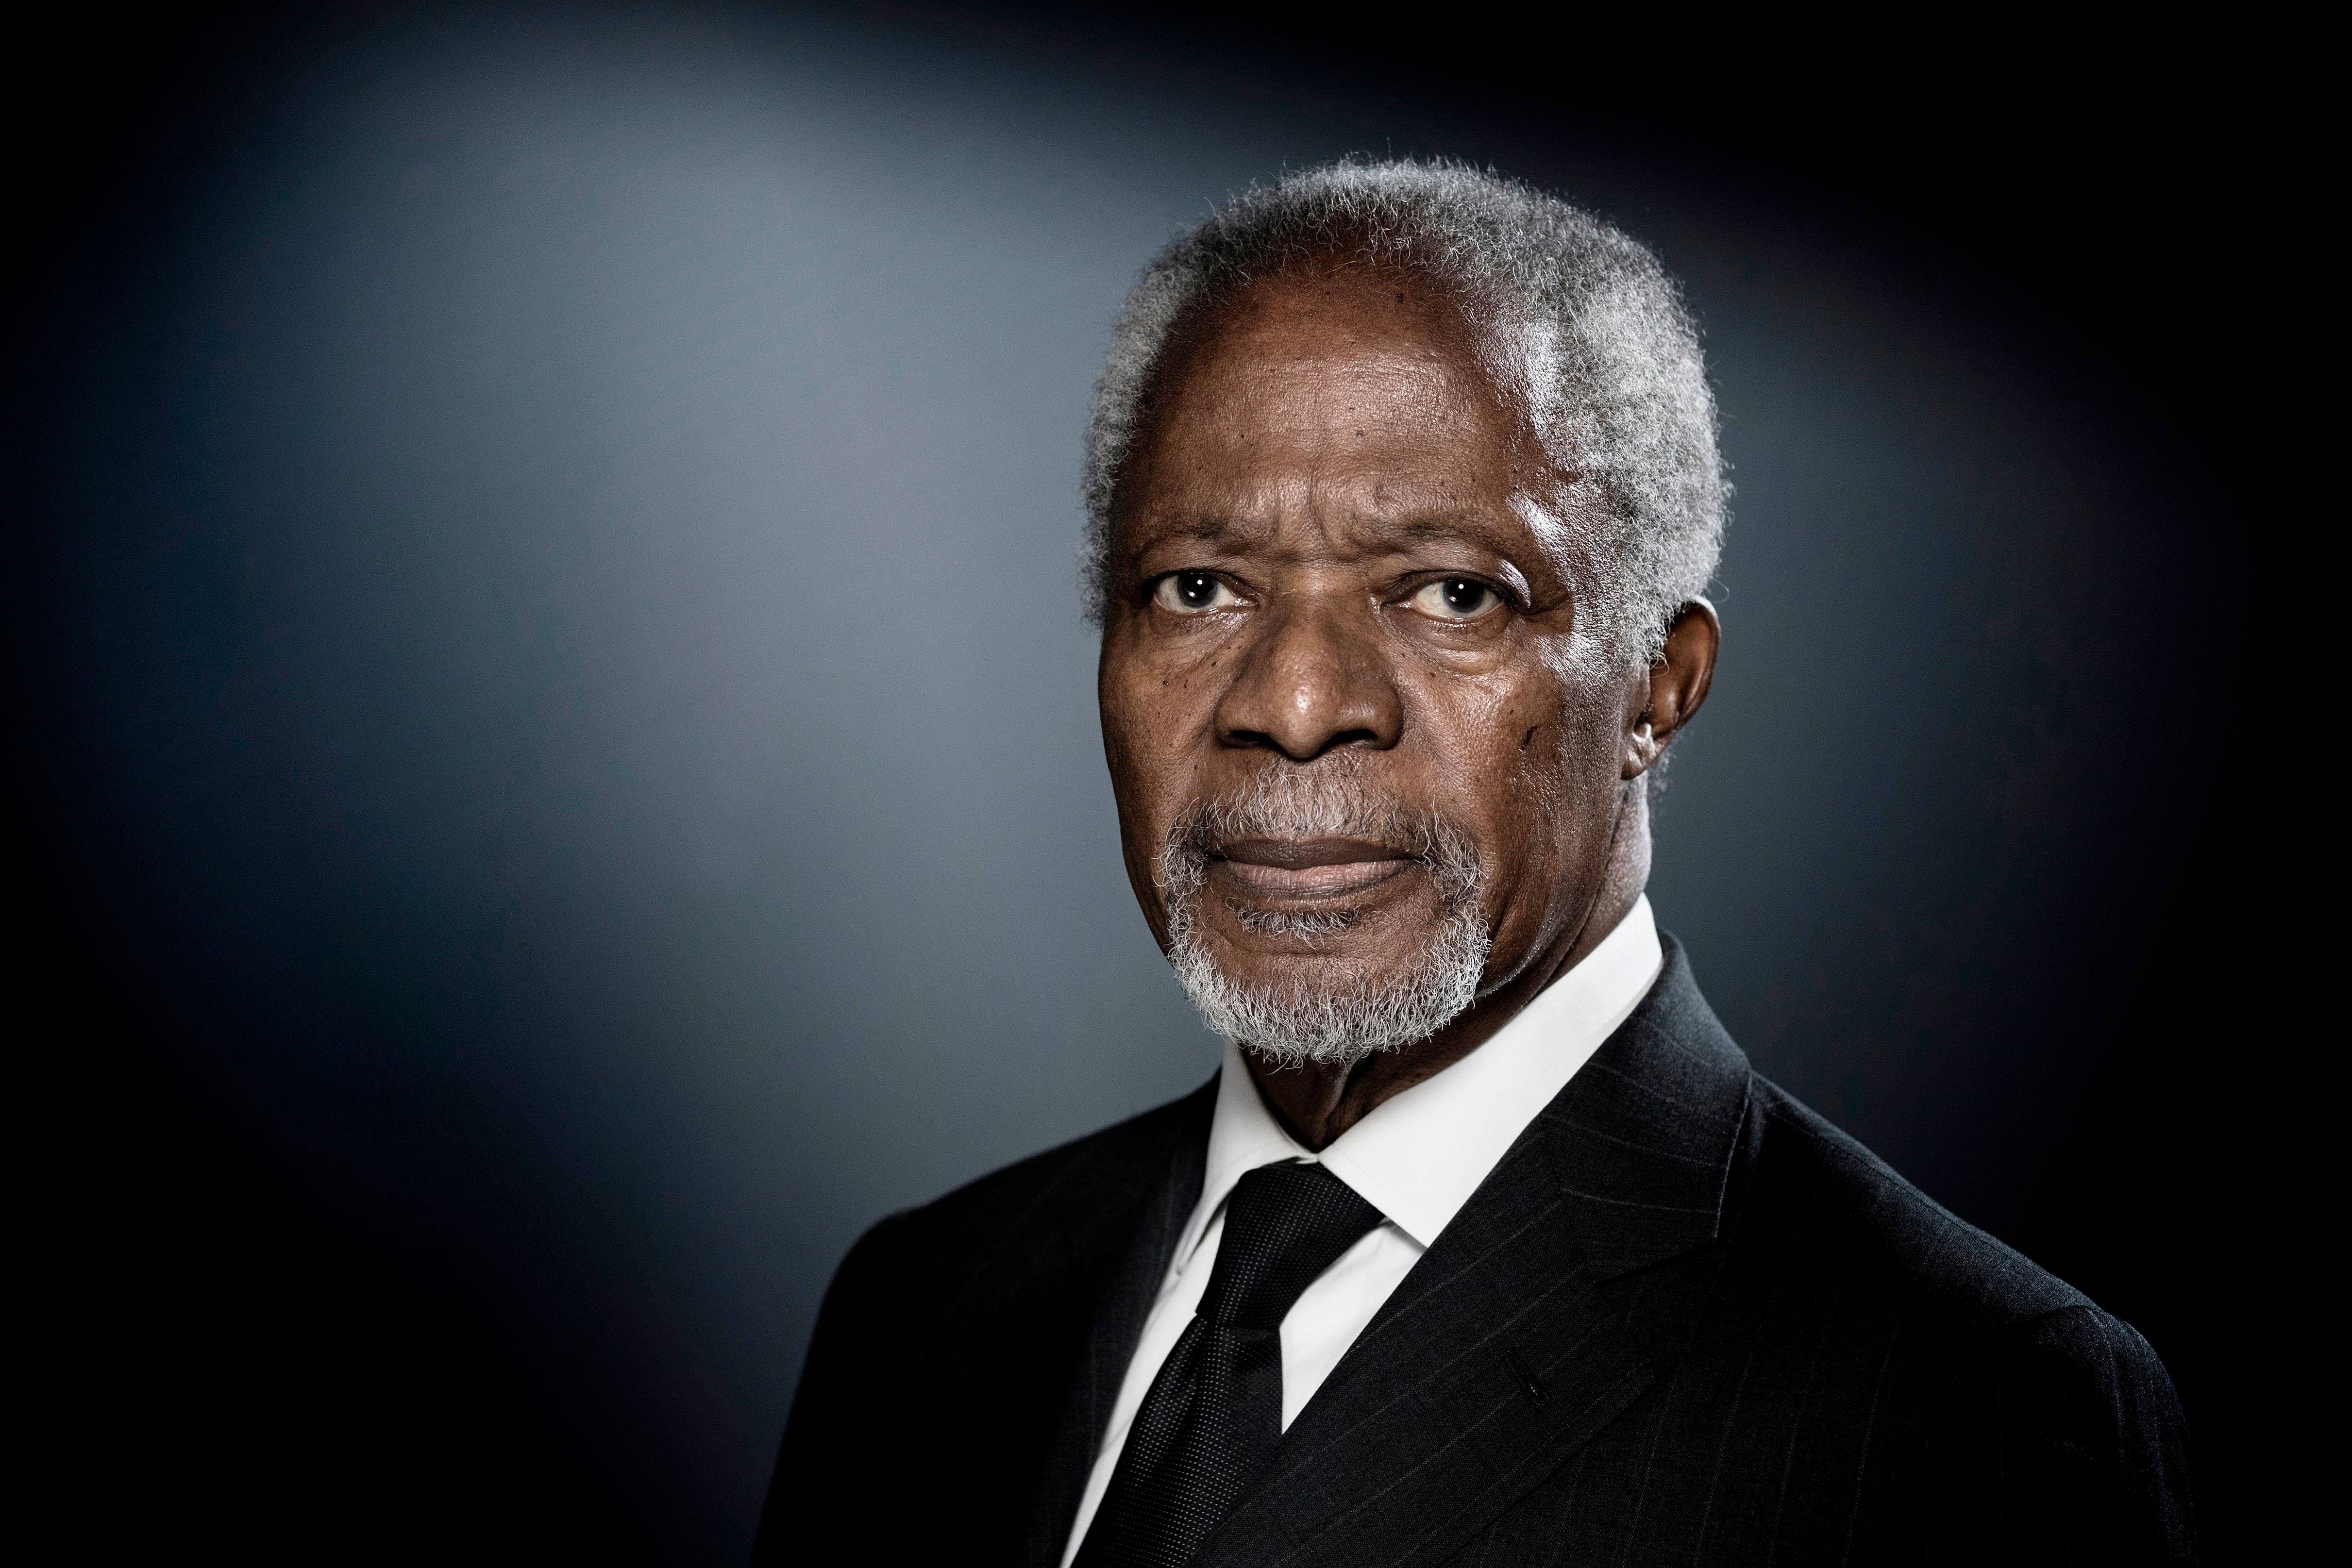 Former United Nations (UN) secretary-general Kofi Annan poses during a photo session in Paris on December 11, 2017. / AFP PHOTO / JOEL SAGET        (Photo credit should read JOEL SAGET/AFP/Getty Images)